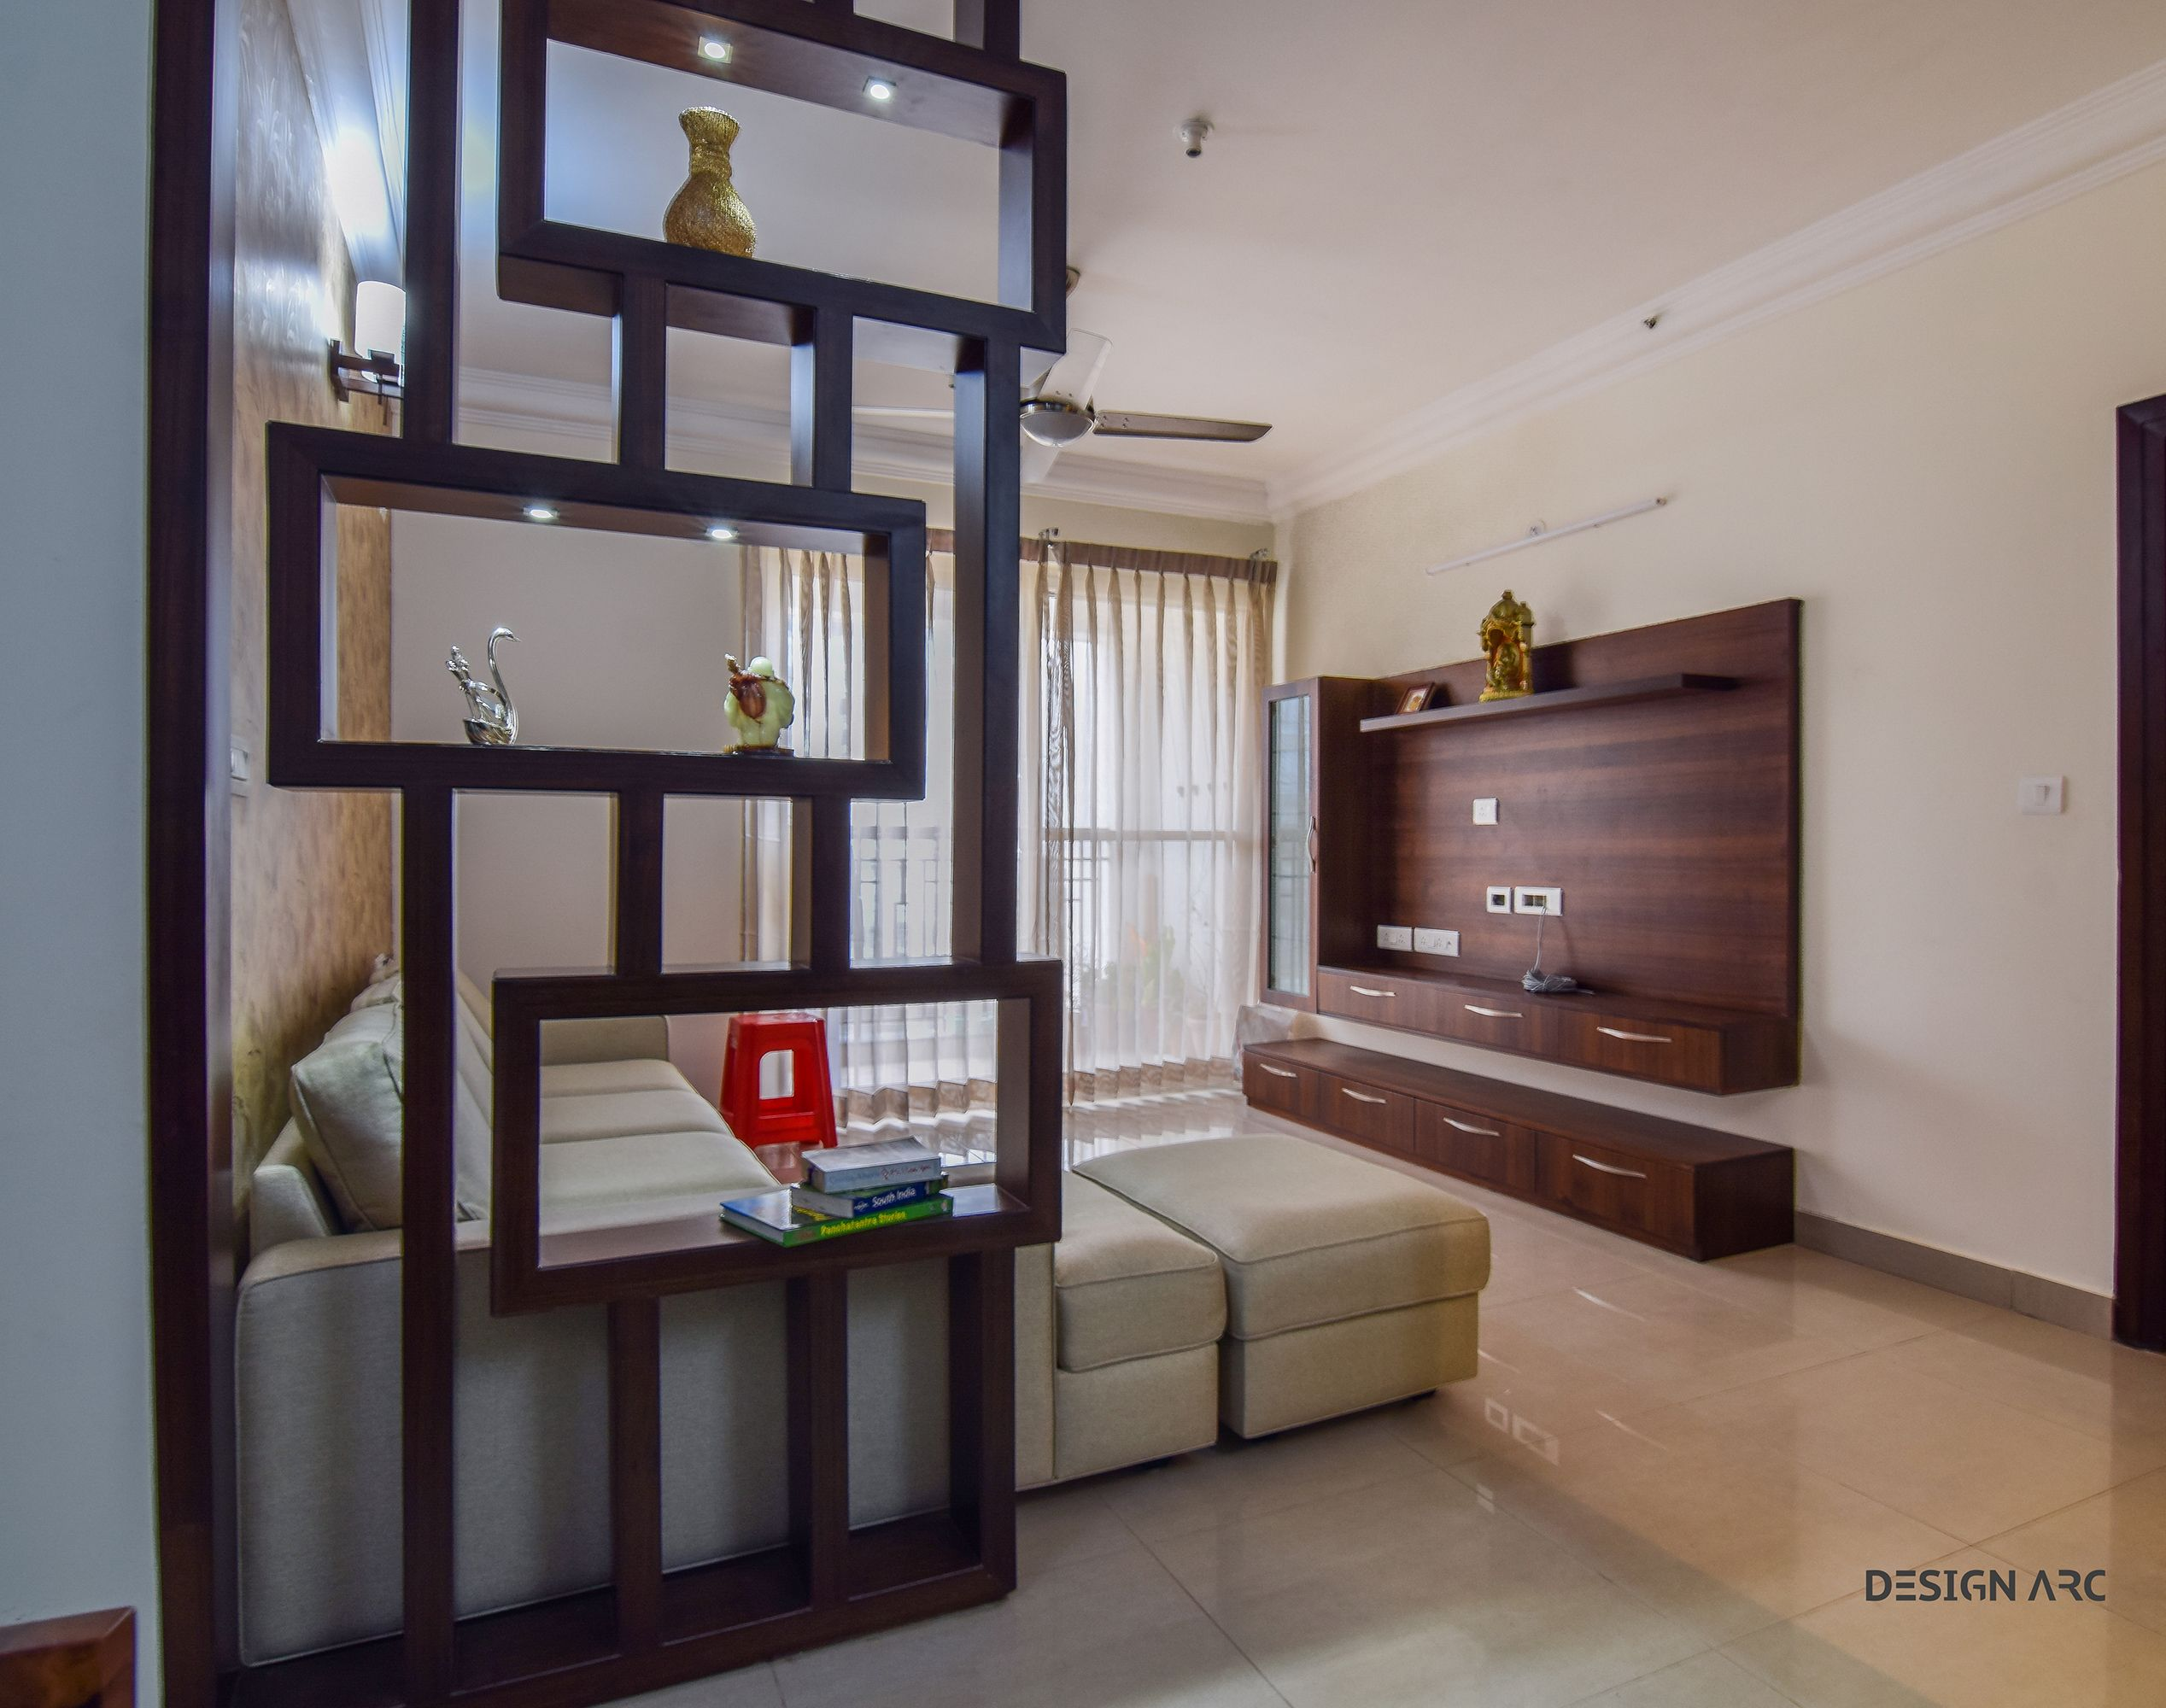 Interior design bangalore tv unit design concept living for Apartment design concept